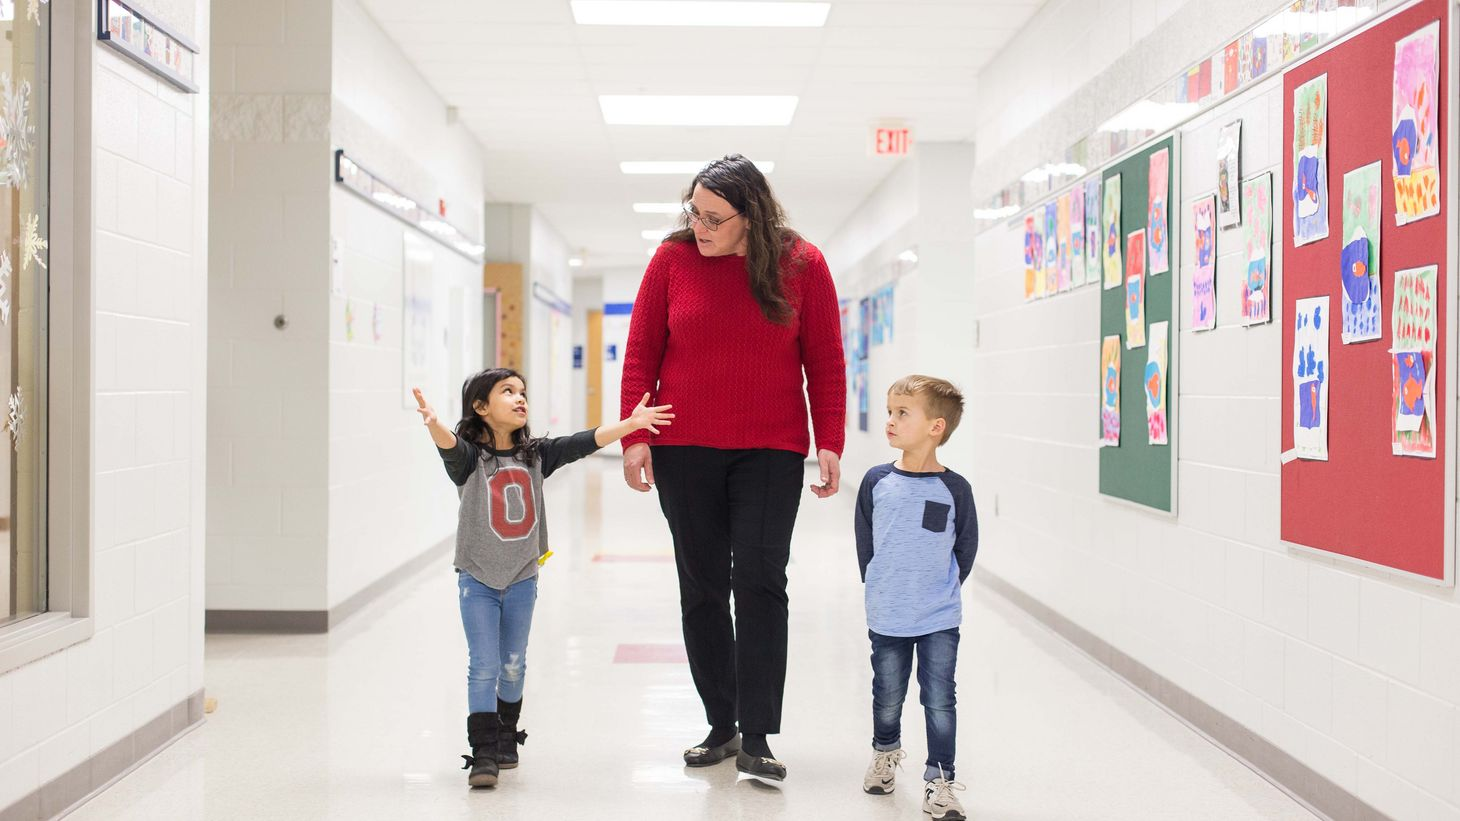 school nurse walking down hallway with two young students